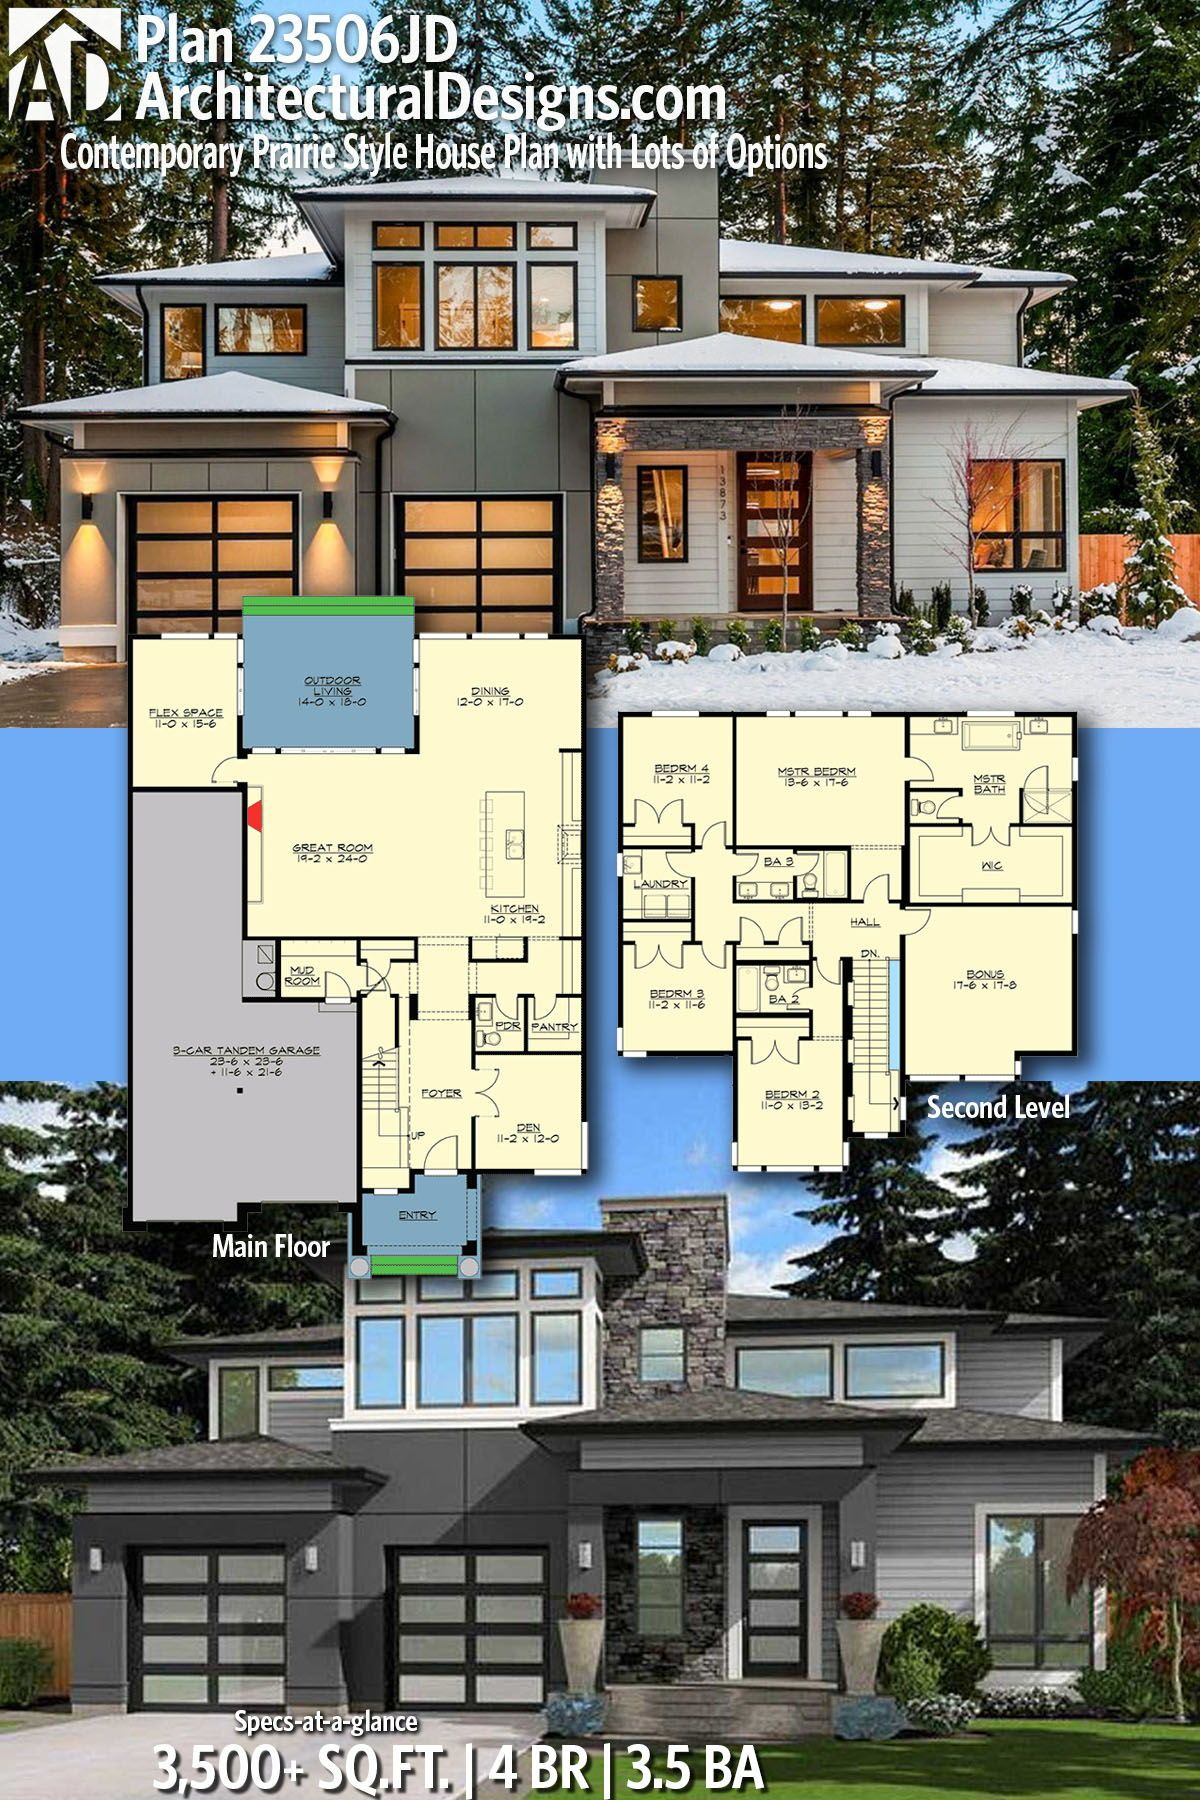 Plan 23506jd Contemporary Prairie Style House Plan With Lots Of Options House Plans Prairie Style Houses House Blueprints